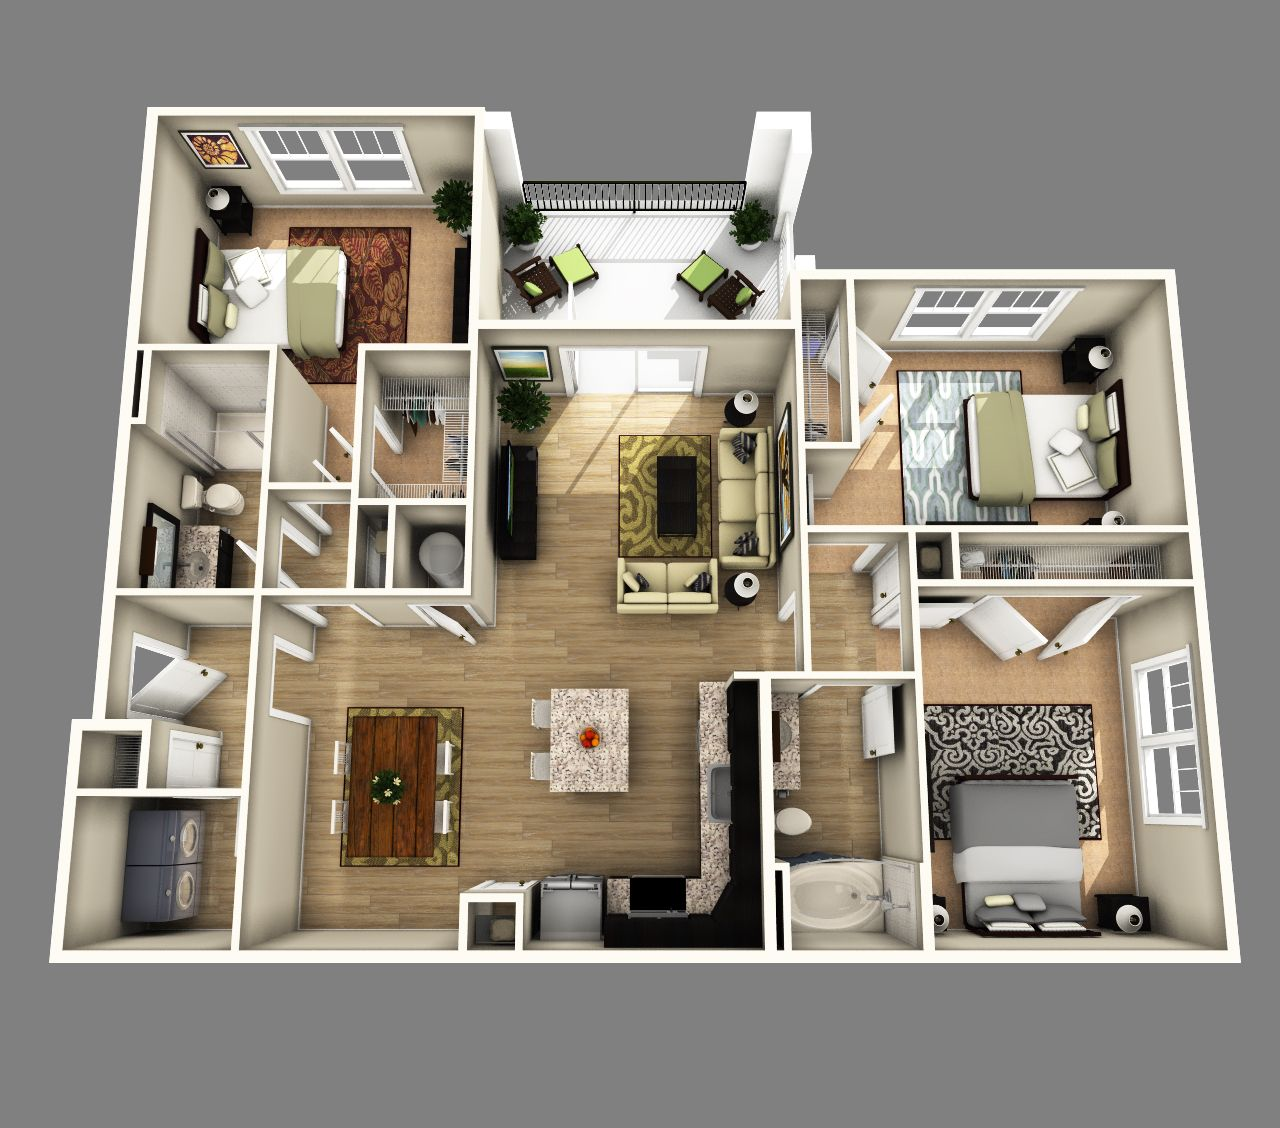 3d open floor plan 3 bedroom 2 bathroom google search for Small house plan design 3d